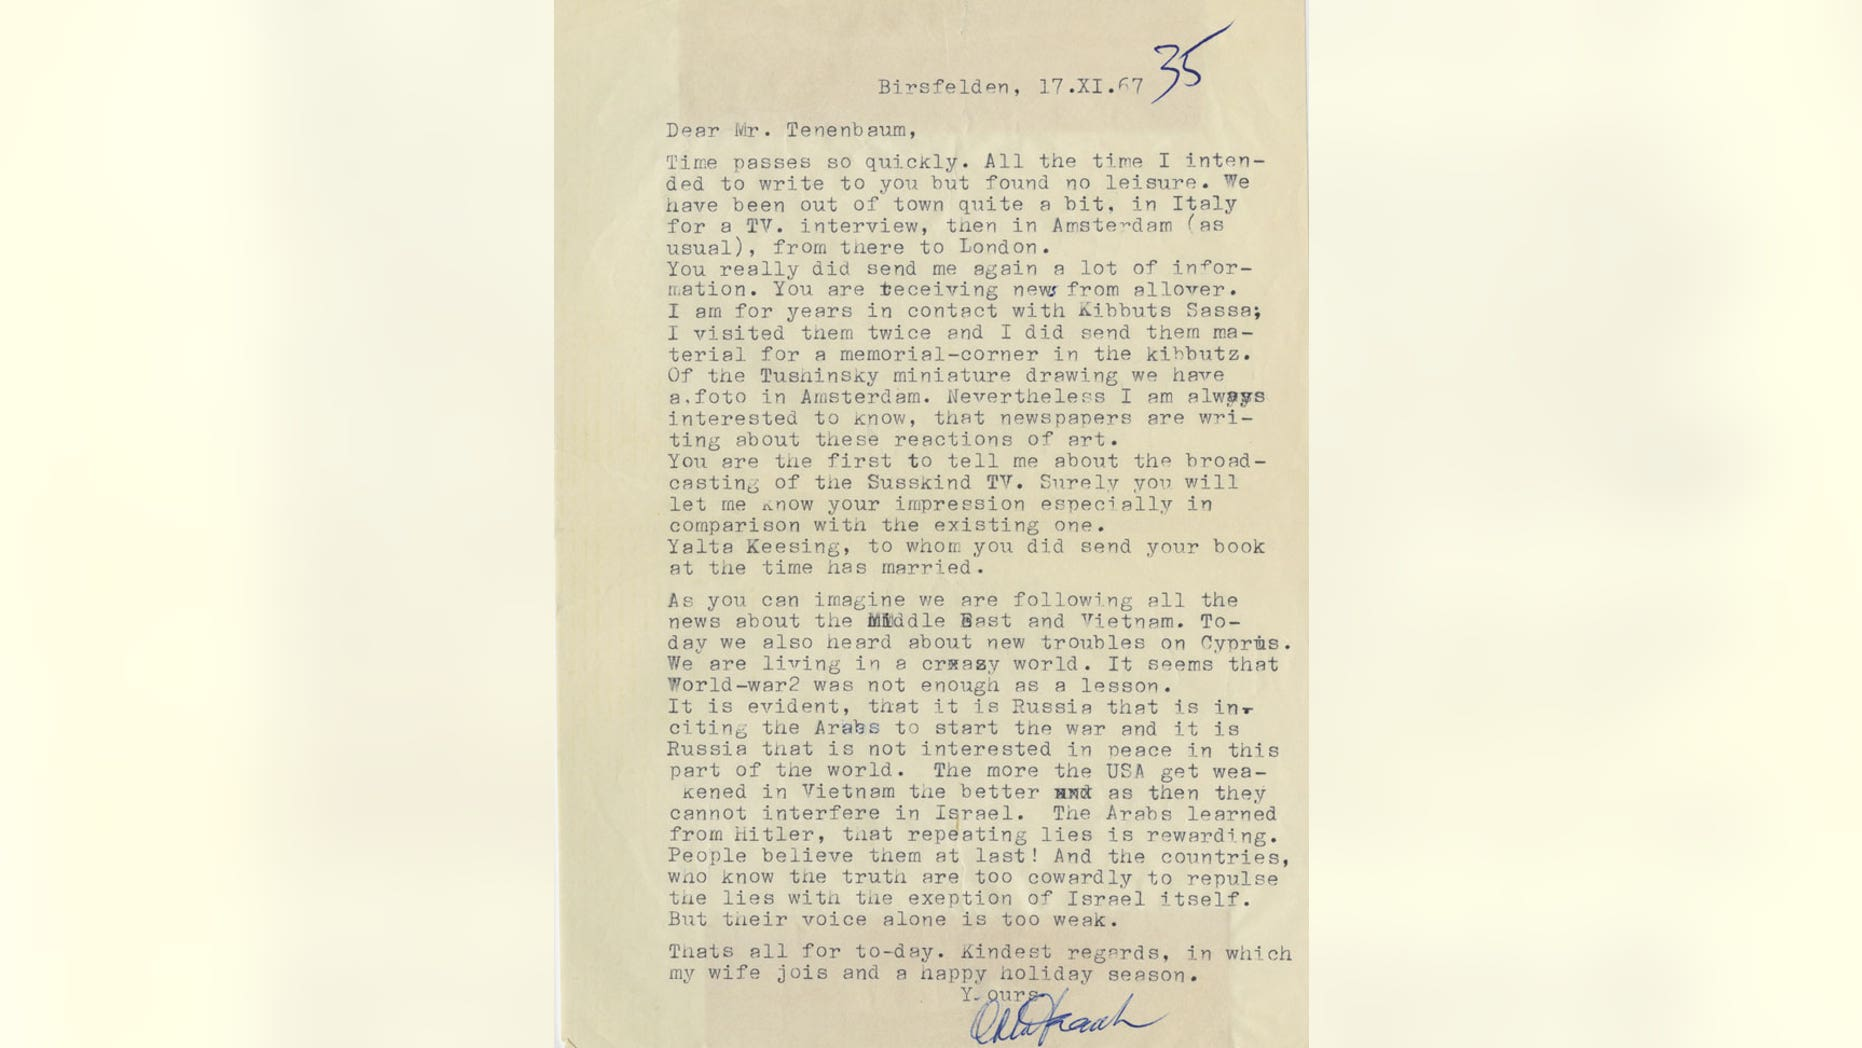 Otto Frank's letter on anti-Semitism.